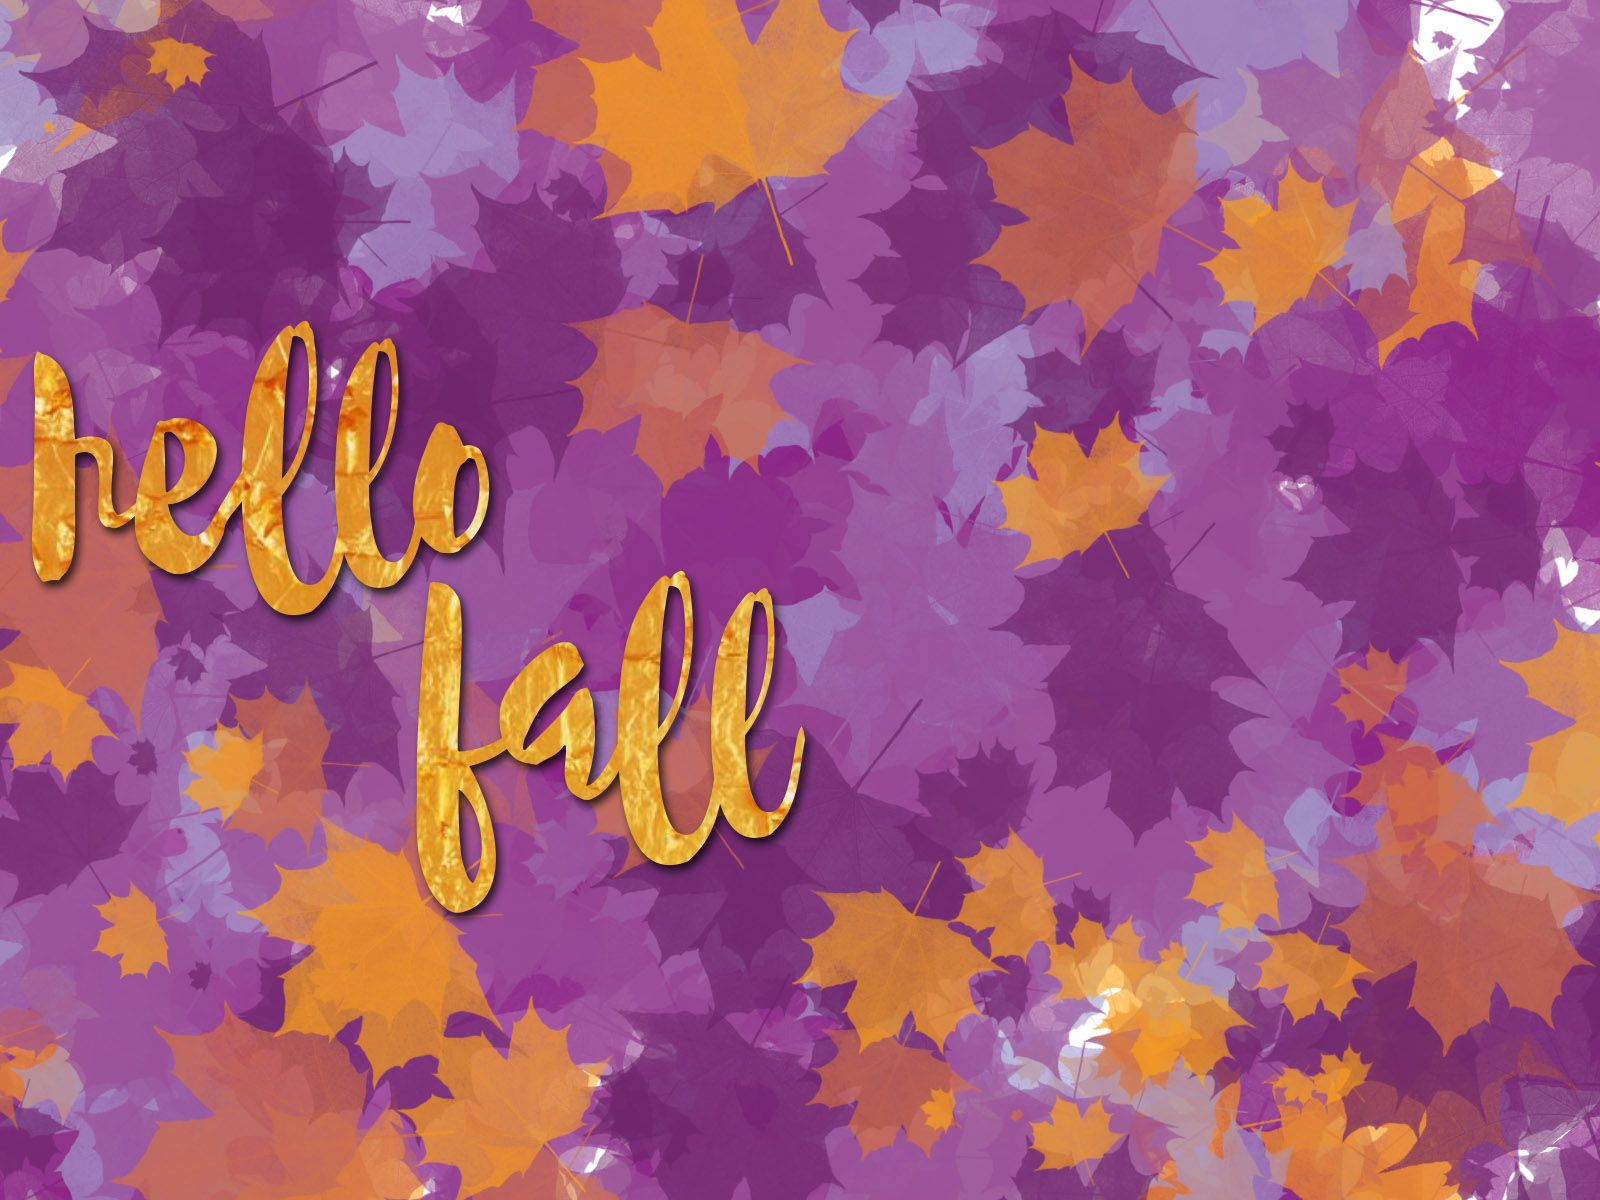 Hello Fall Wallpaper Macbook Pro Best 25 Fall Desktop Backgrounds Ideas On Pinterest